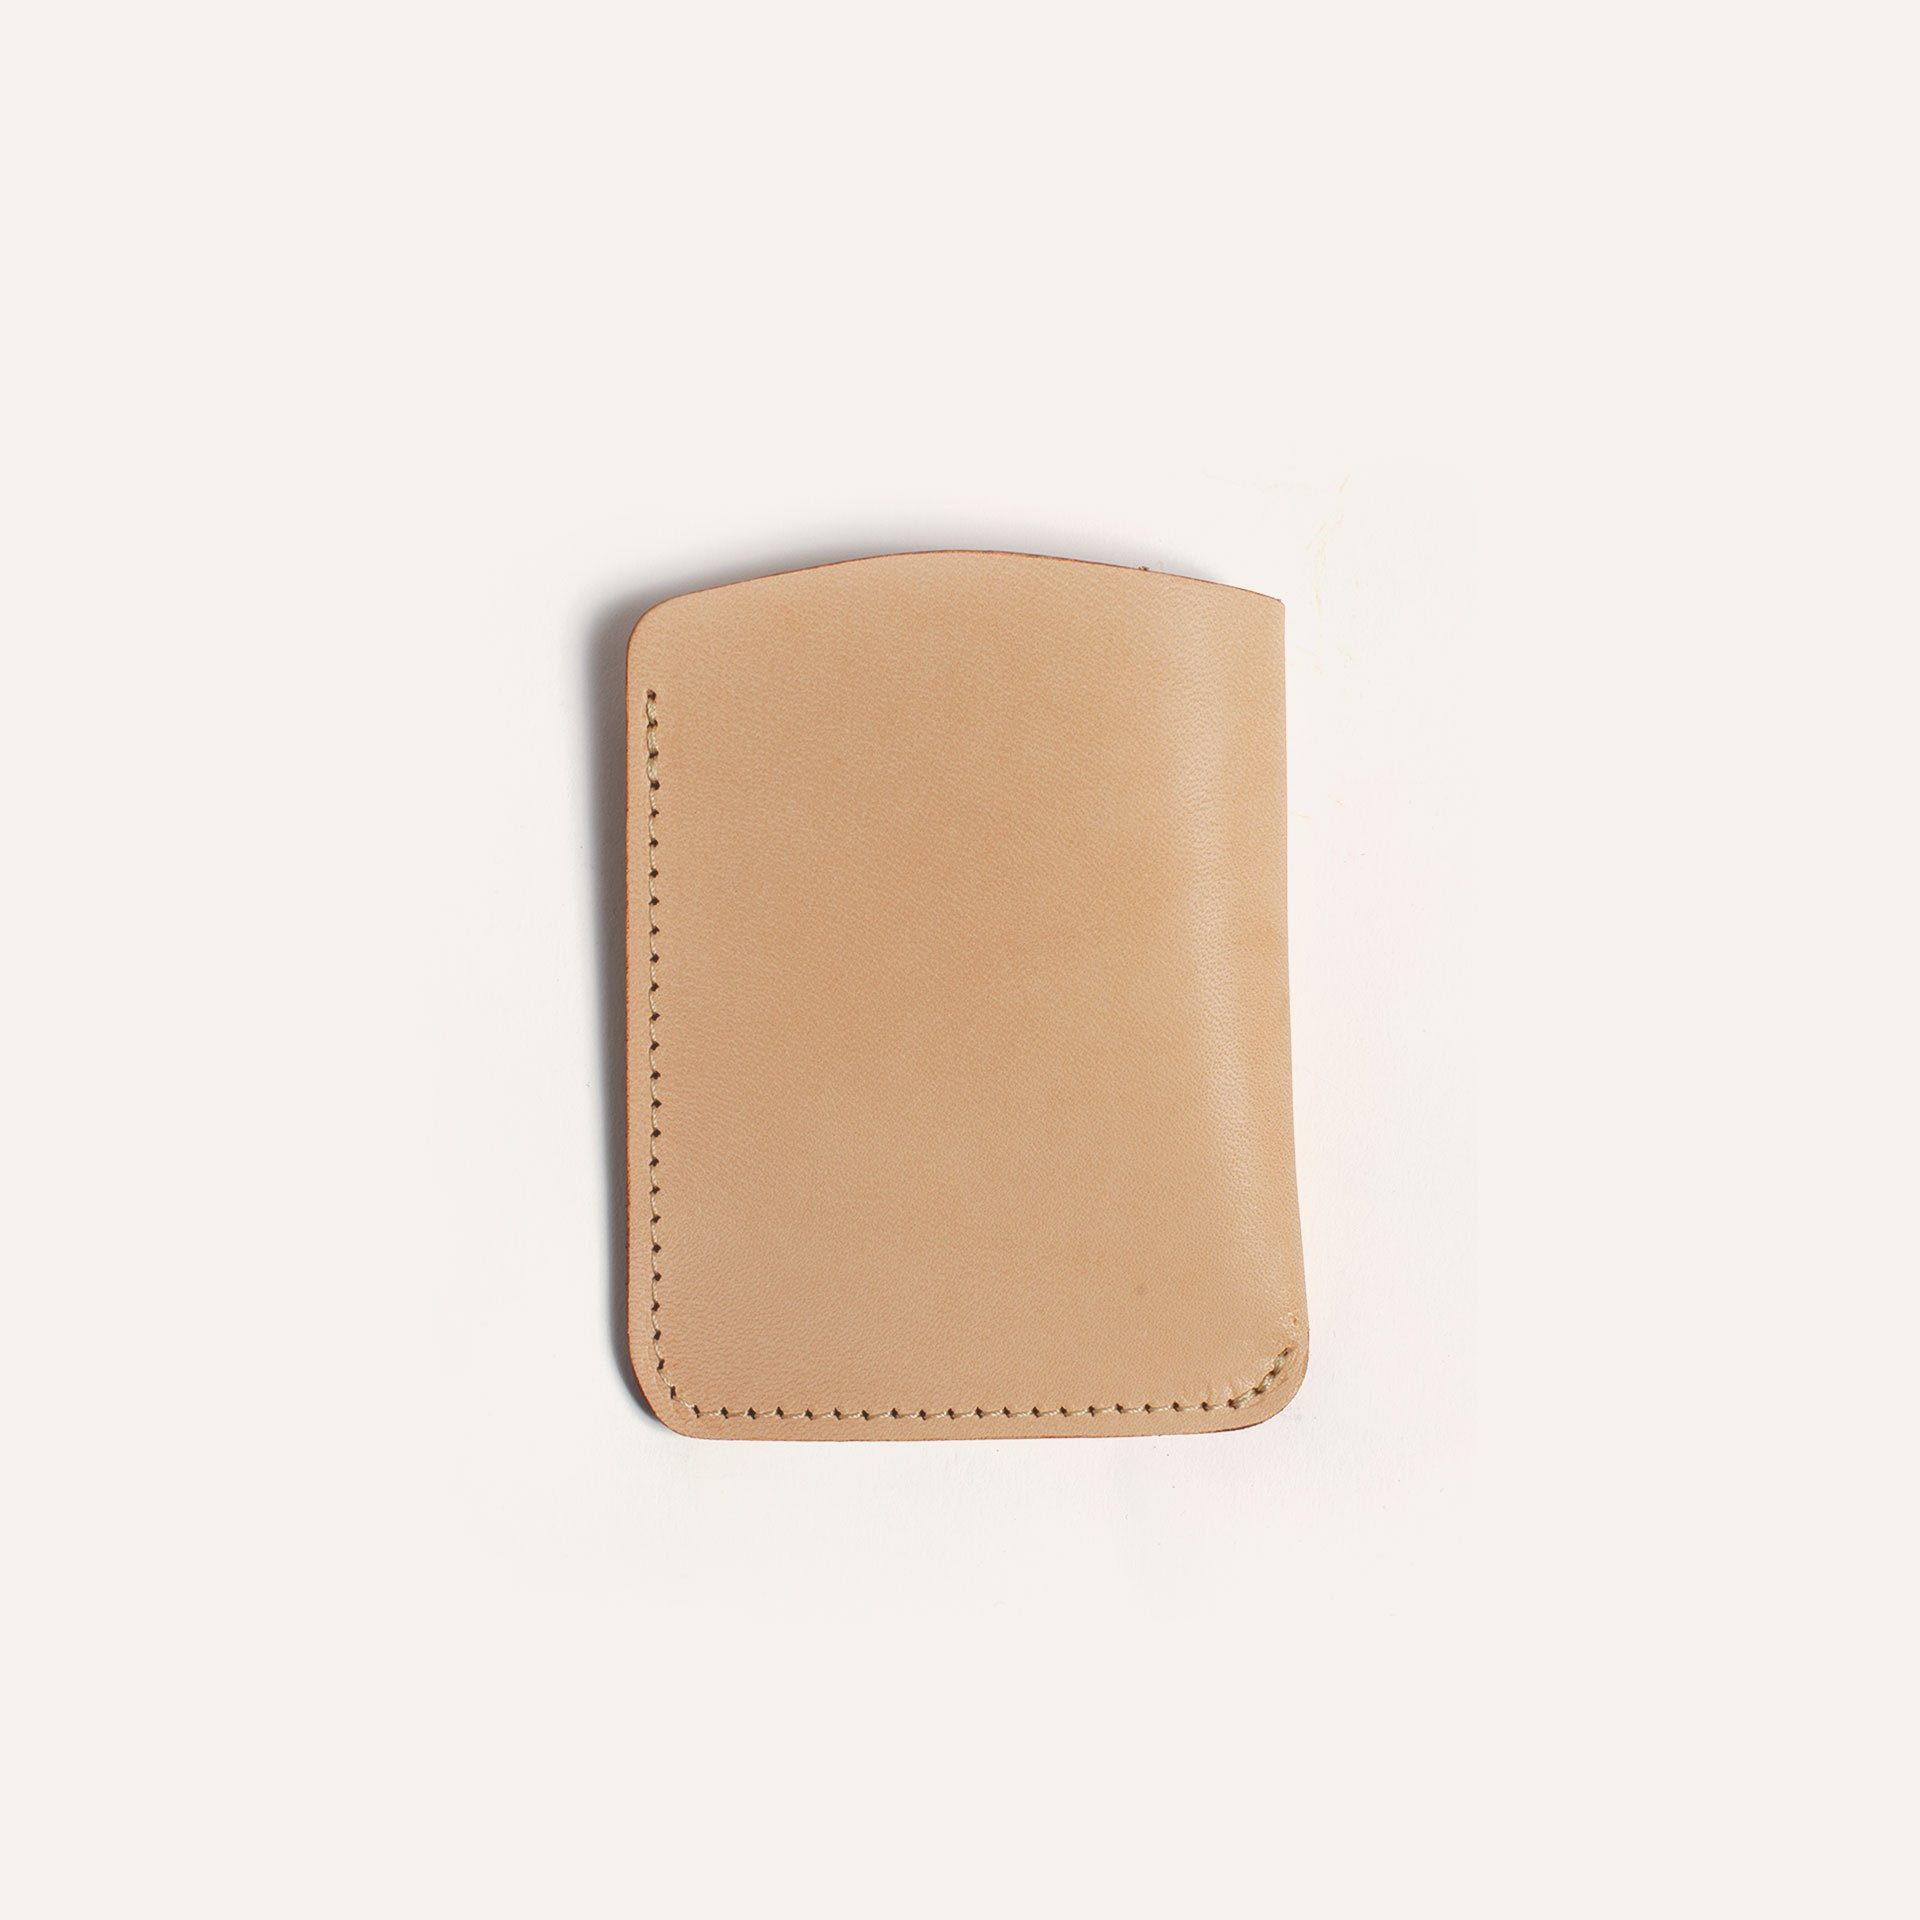 Intro business card holder - Natural (image n°2)